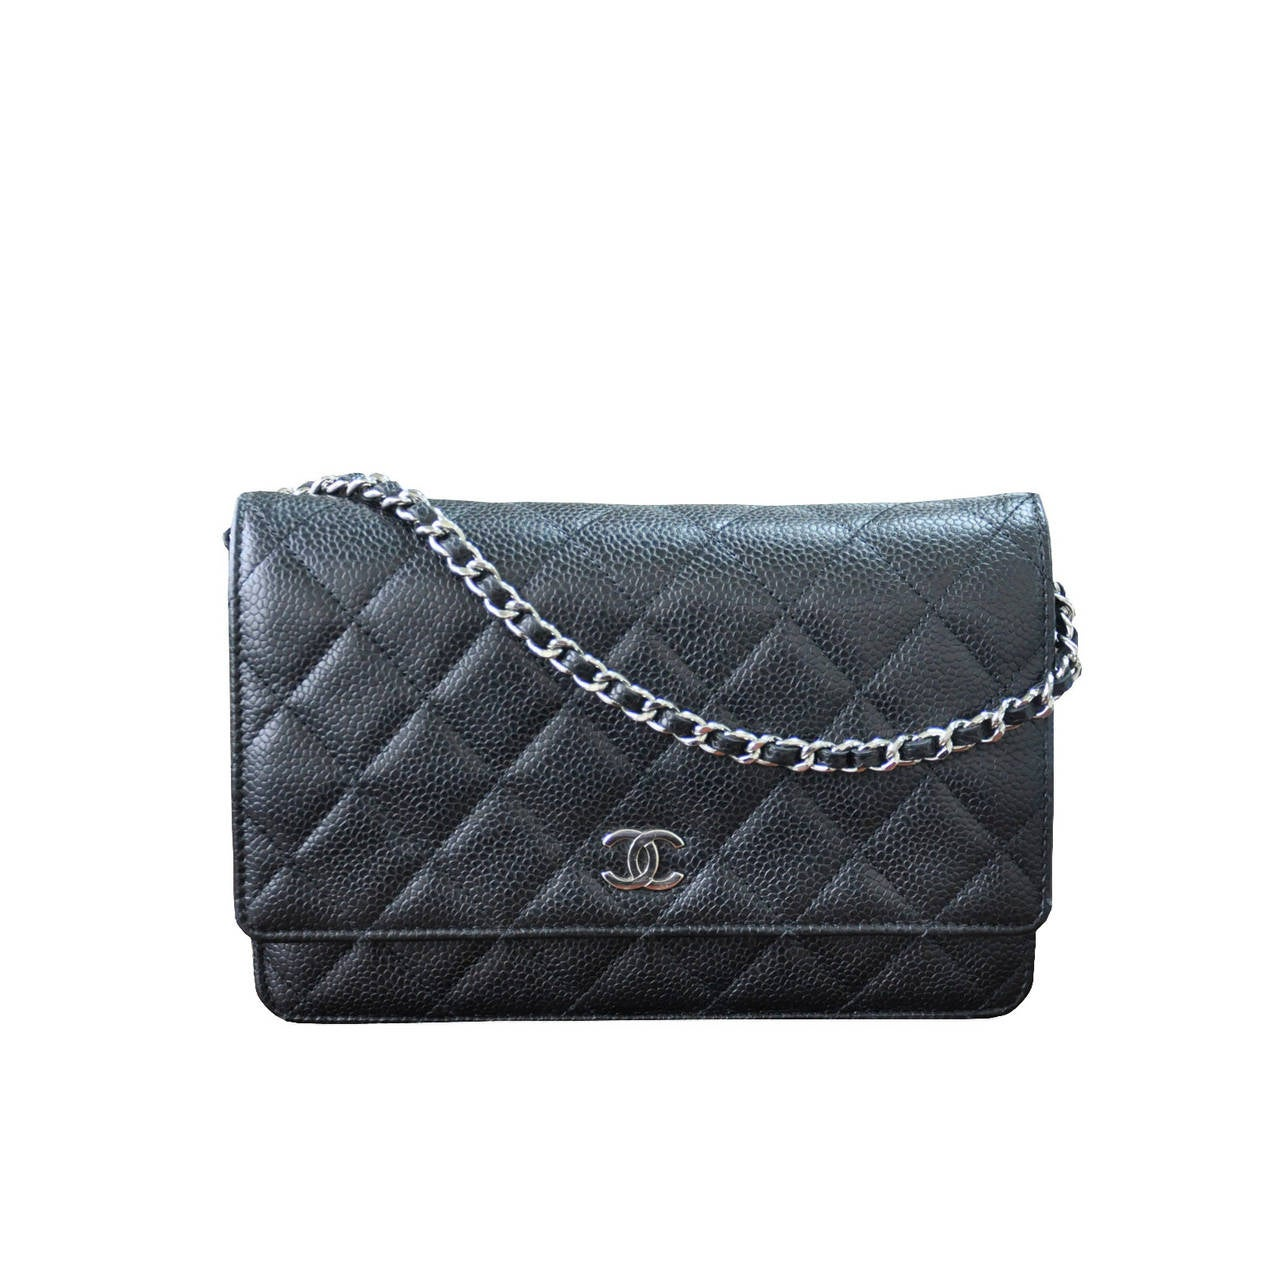 Chanel WOC Wallet on Chain Black Caviar Leather Crossbody Handbag For Sale 8221be88d37c